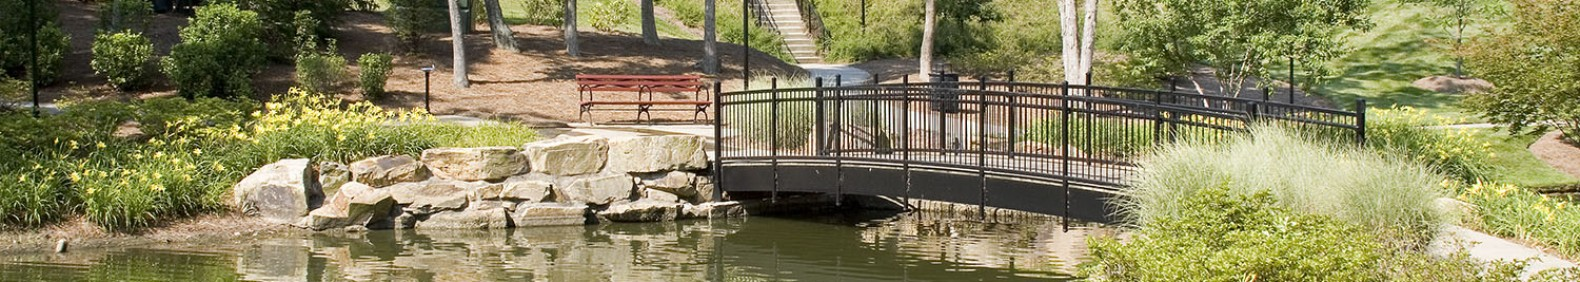 The walking bridge at Cullman Park